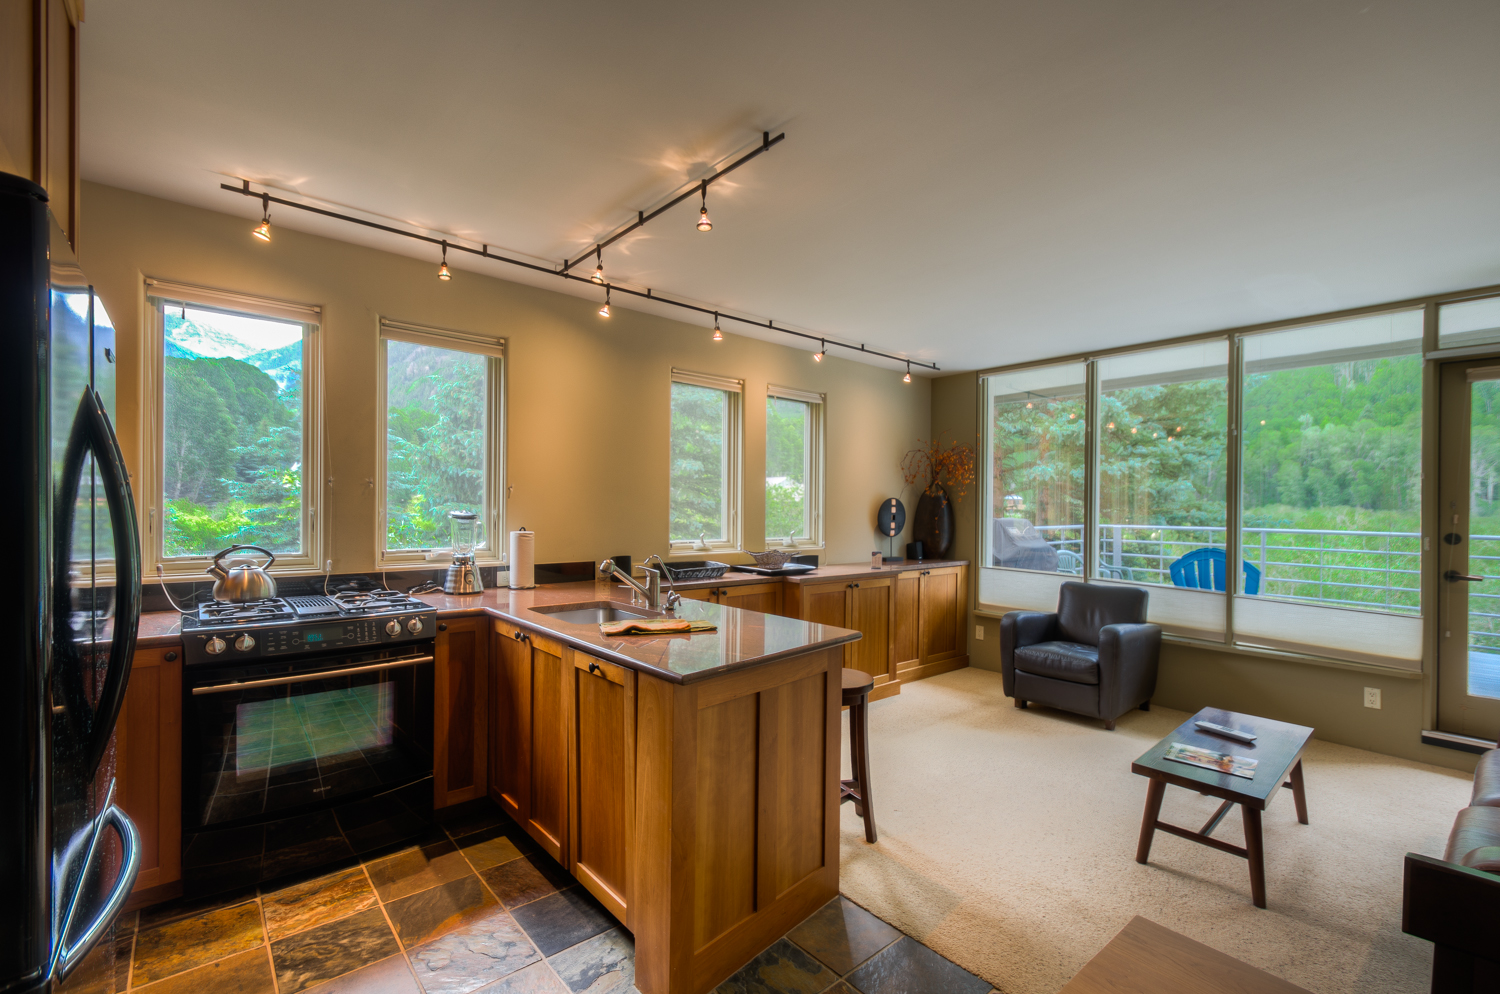 Kitchen to Living Room with uncomparable views